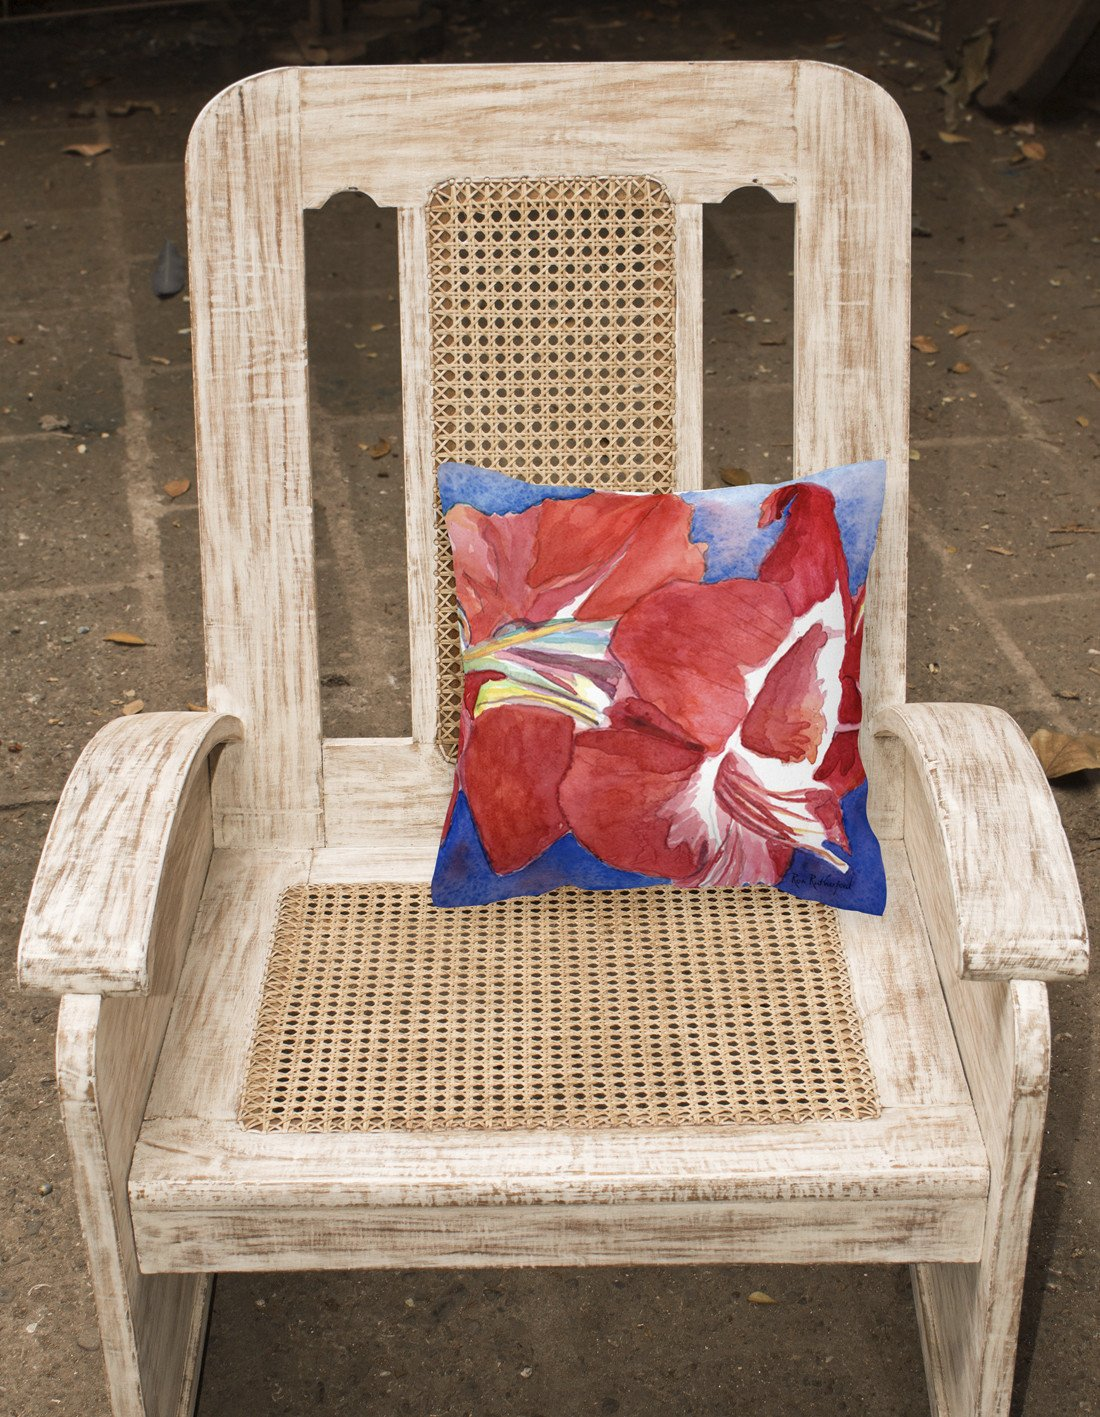 Flower - Amaryllis Decorative   Canvas Fabric Pillow by Caroline's Treasures